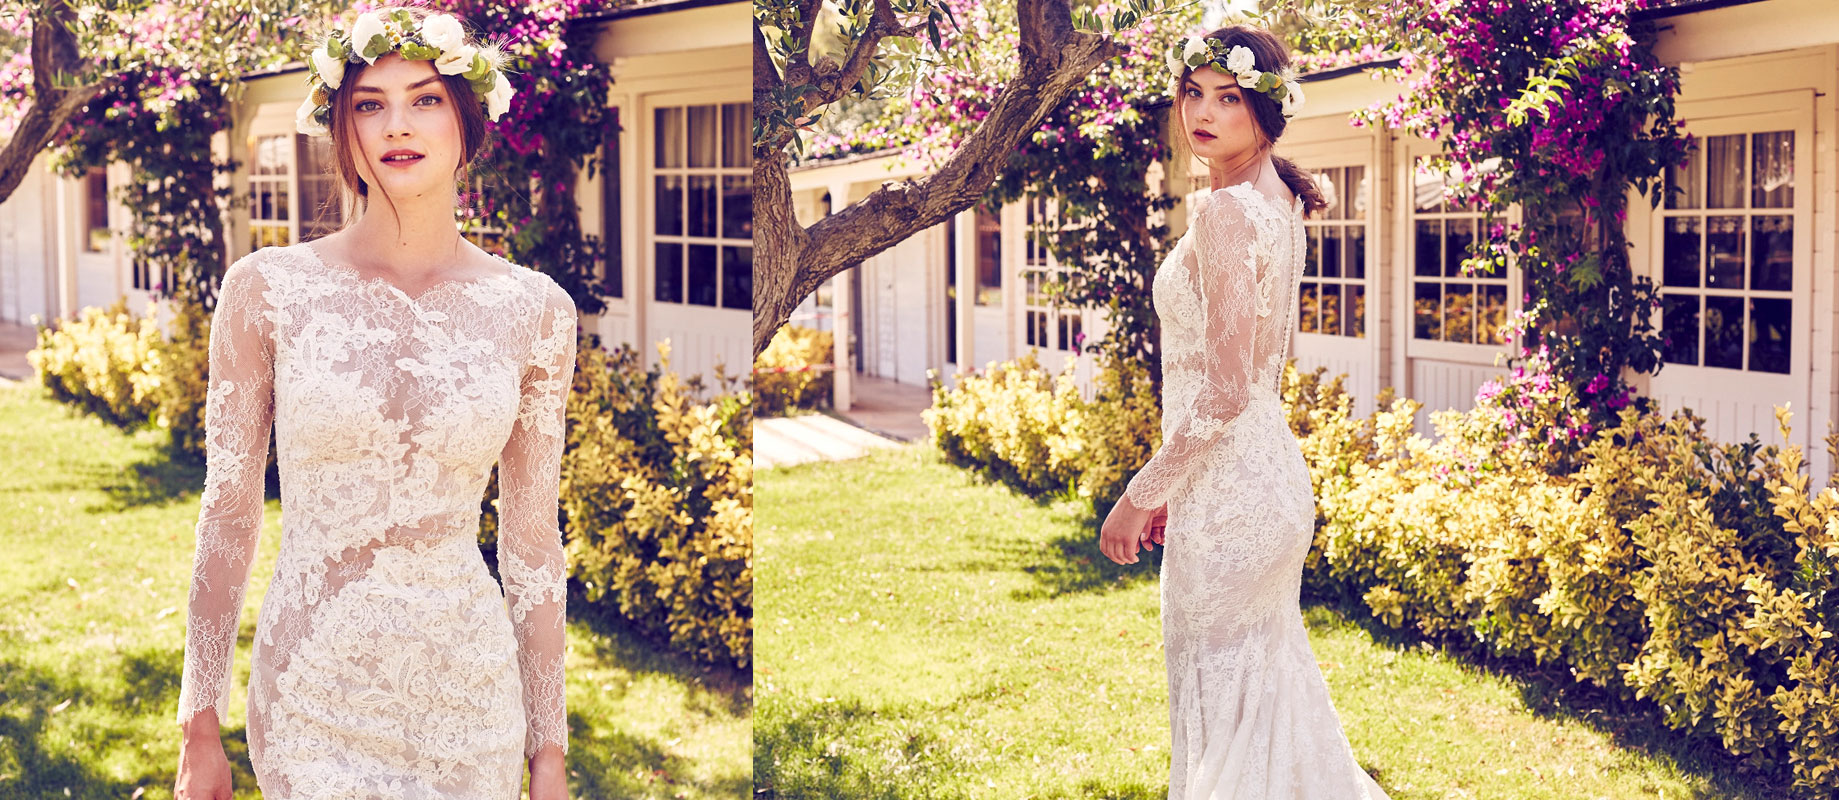 Los Angeles Wedding Dress - Bridal Salon Los Angeles | Beautiful Day ...